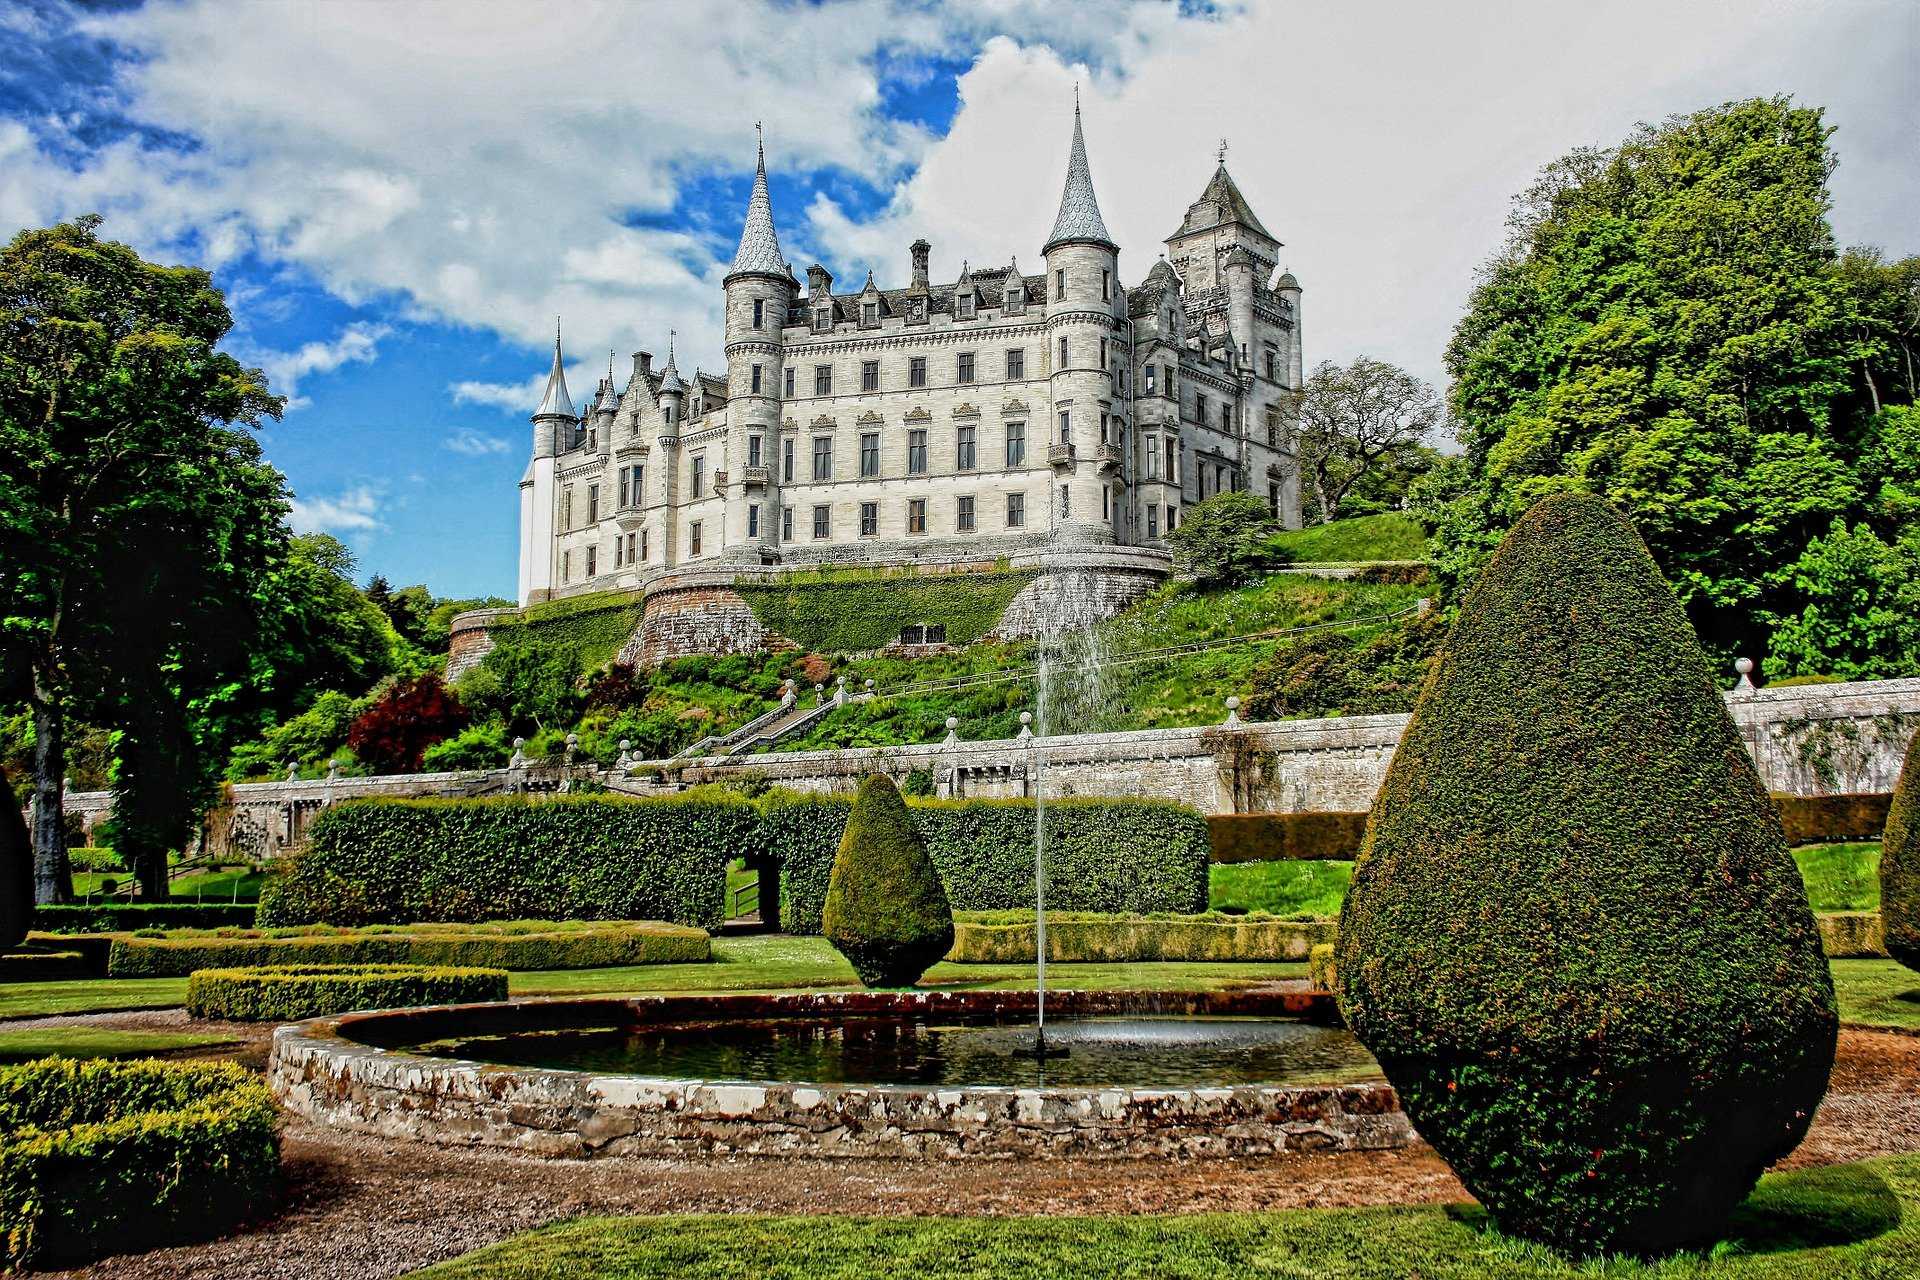 The white Dunrobin castle in Scotland with beautiful gardens in front